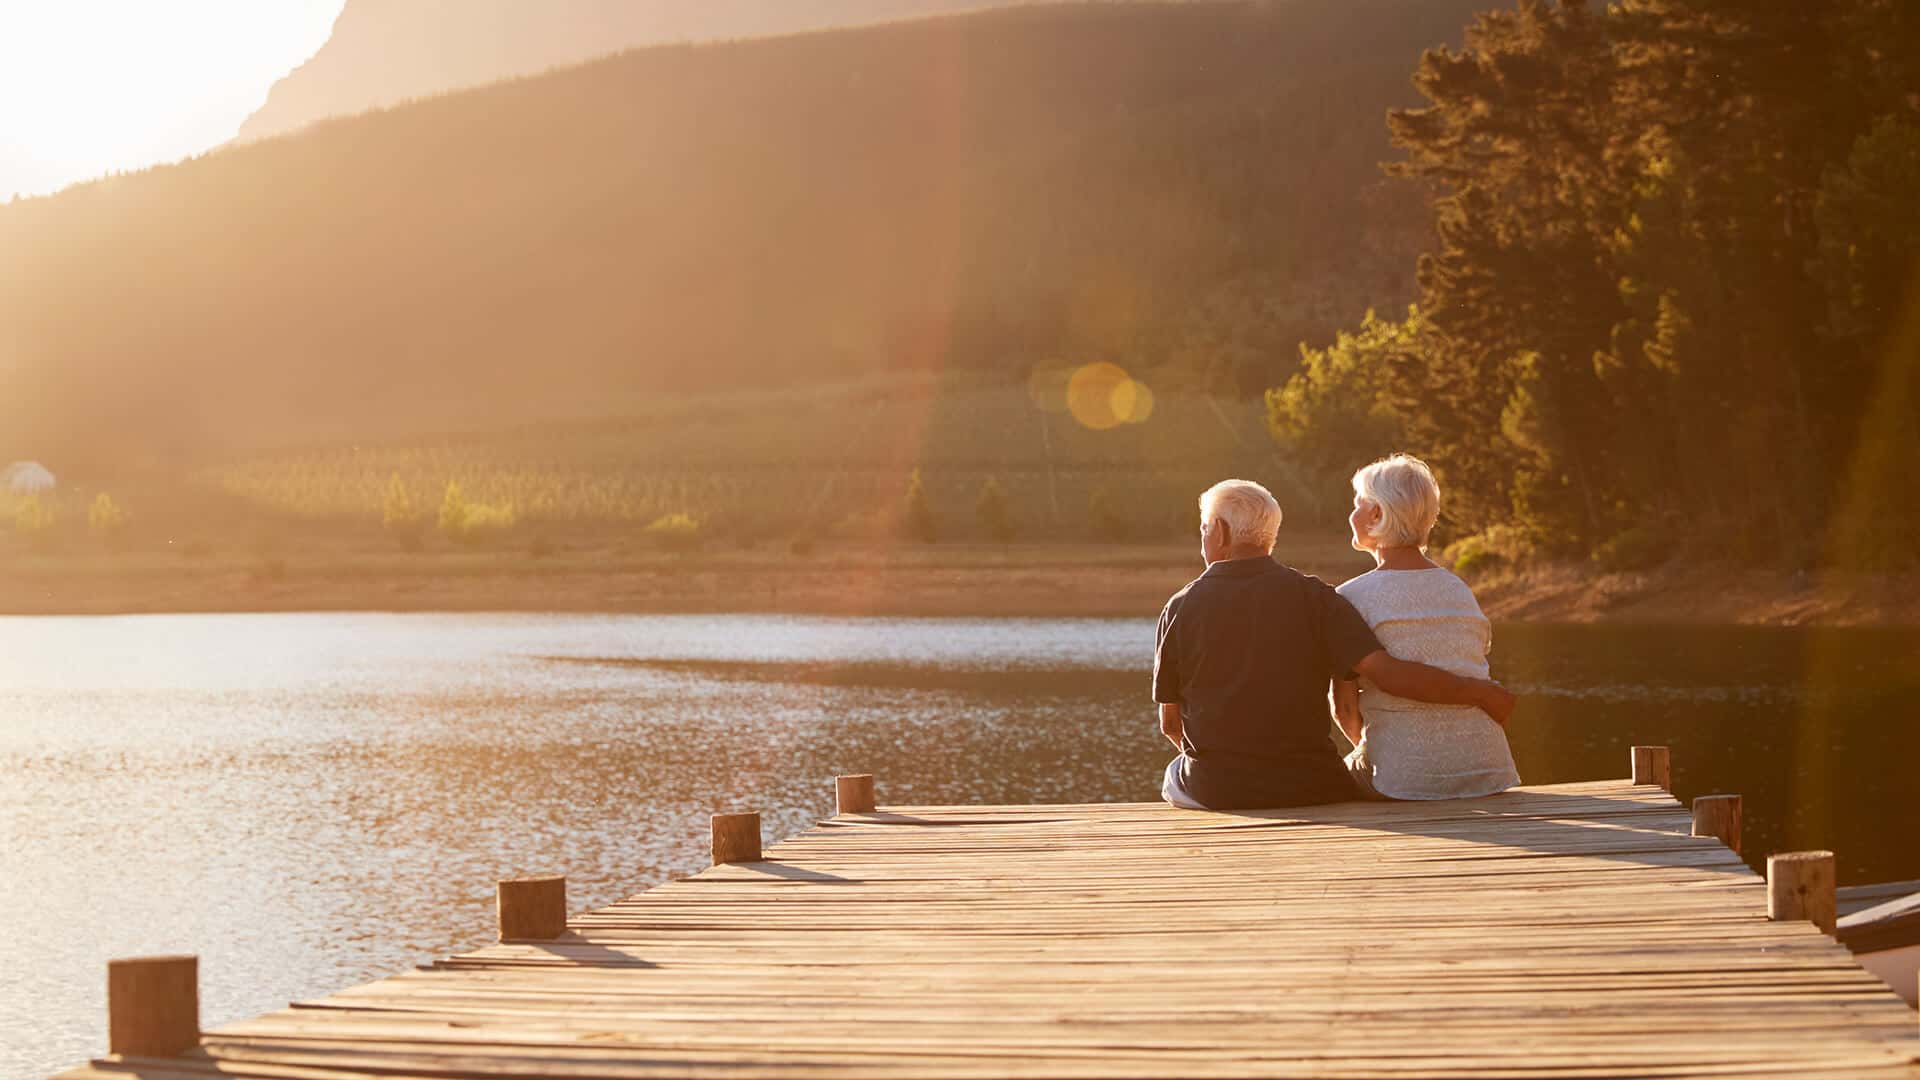 Widowed dating symbolized by a man and woman sitting next to each other on a dock end enjoy the sundowner